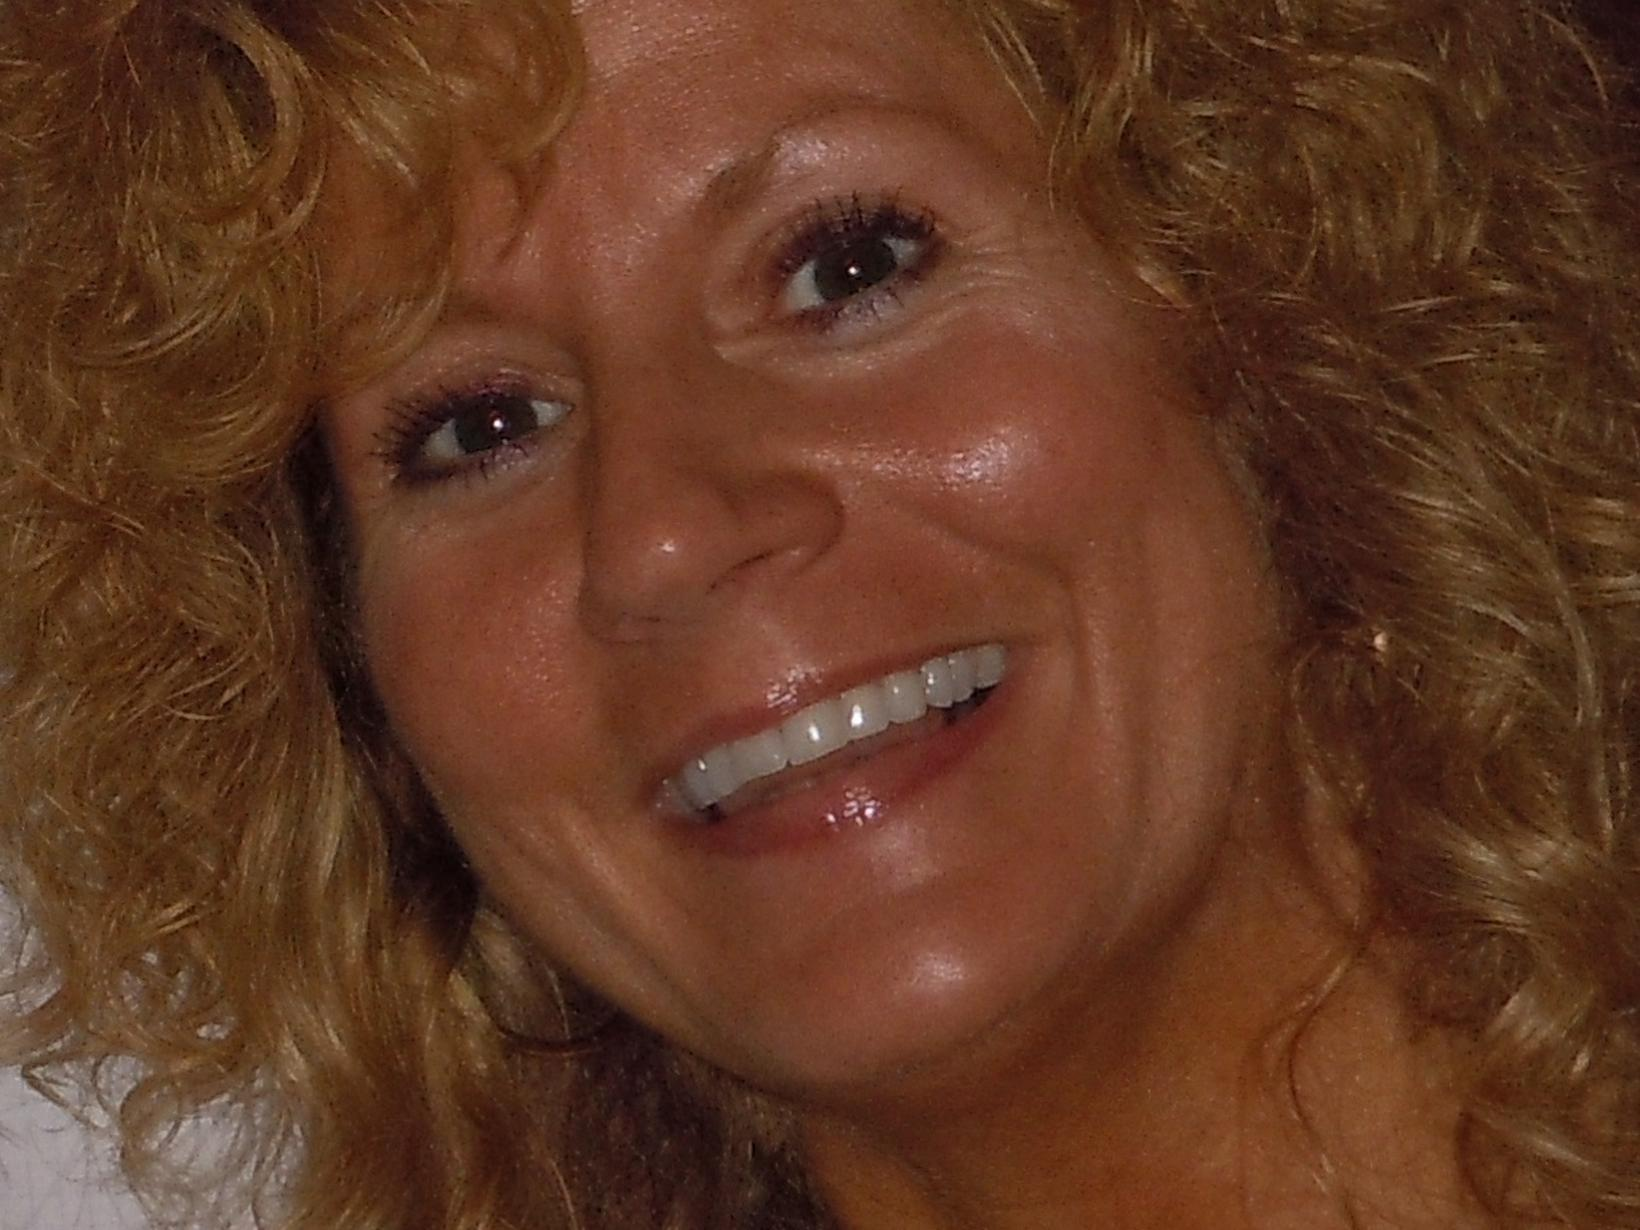 Heidi from Alstead, New Hampshire, United States